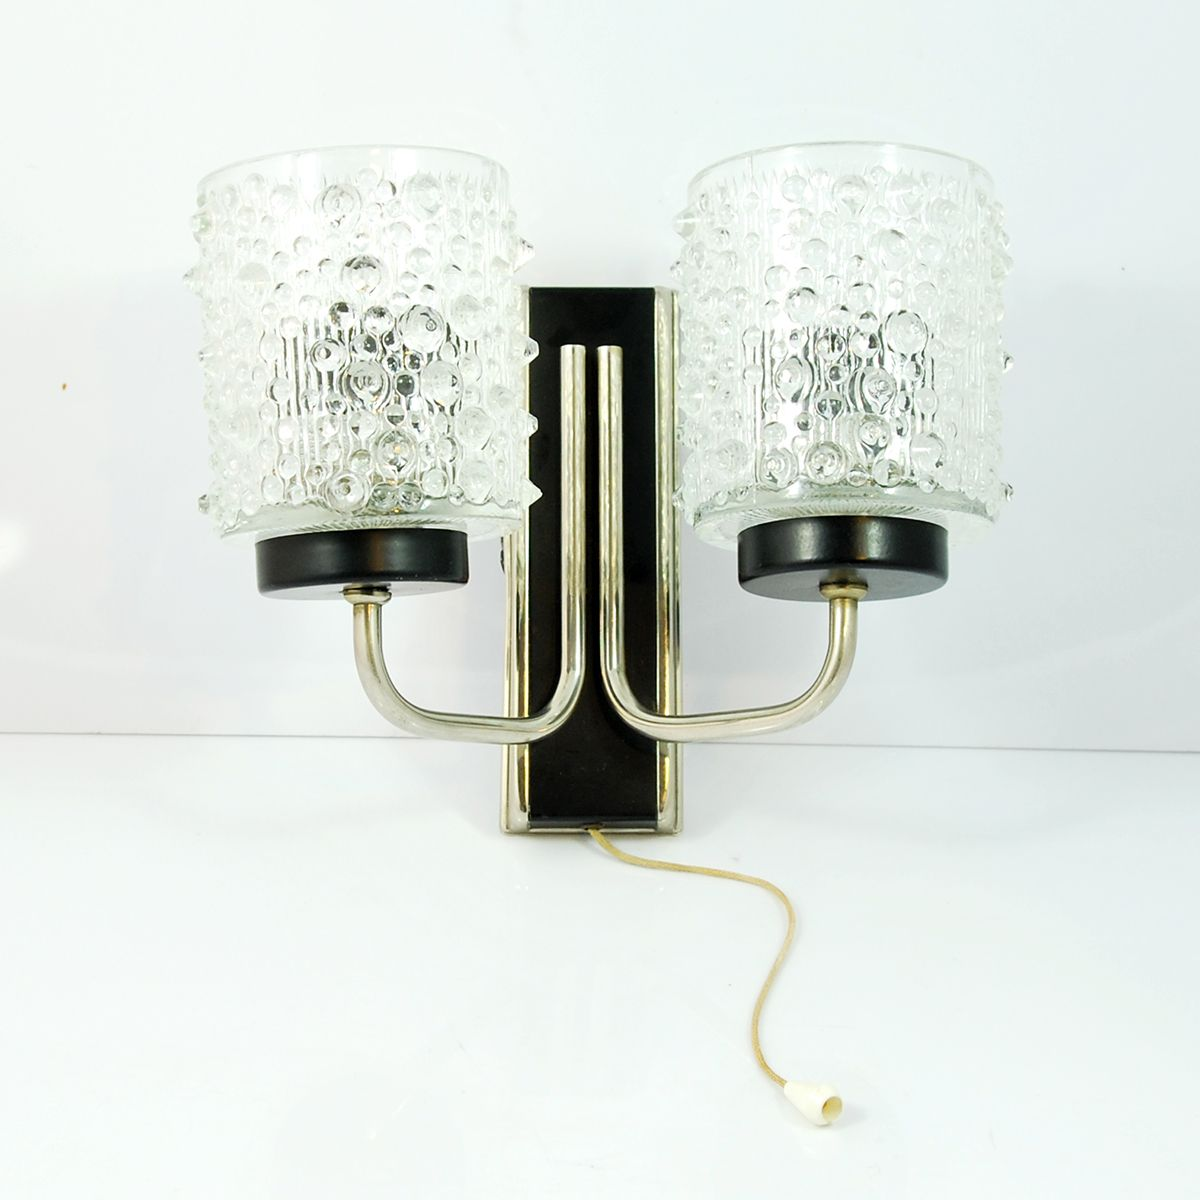 double wall light from solken leuchten 1960s for sale at. Black Bedroom Furniture Sets. Home Design Ideas